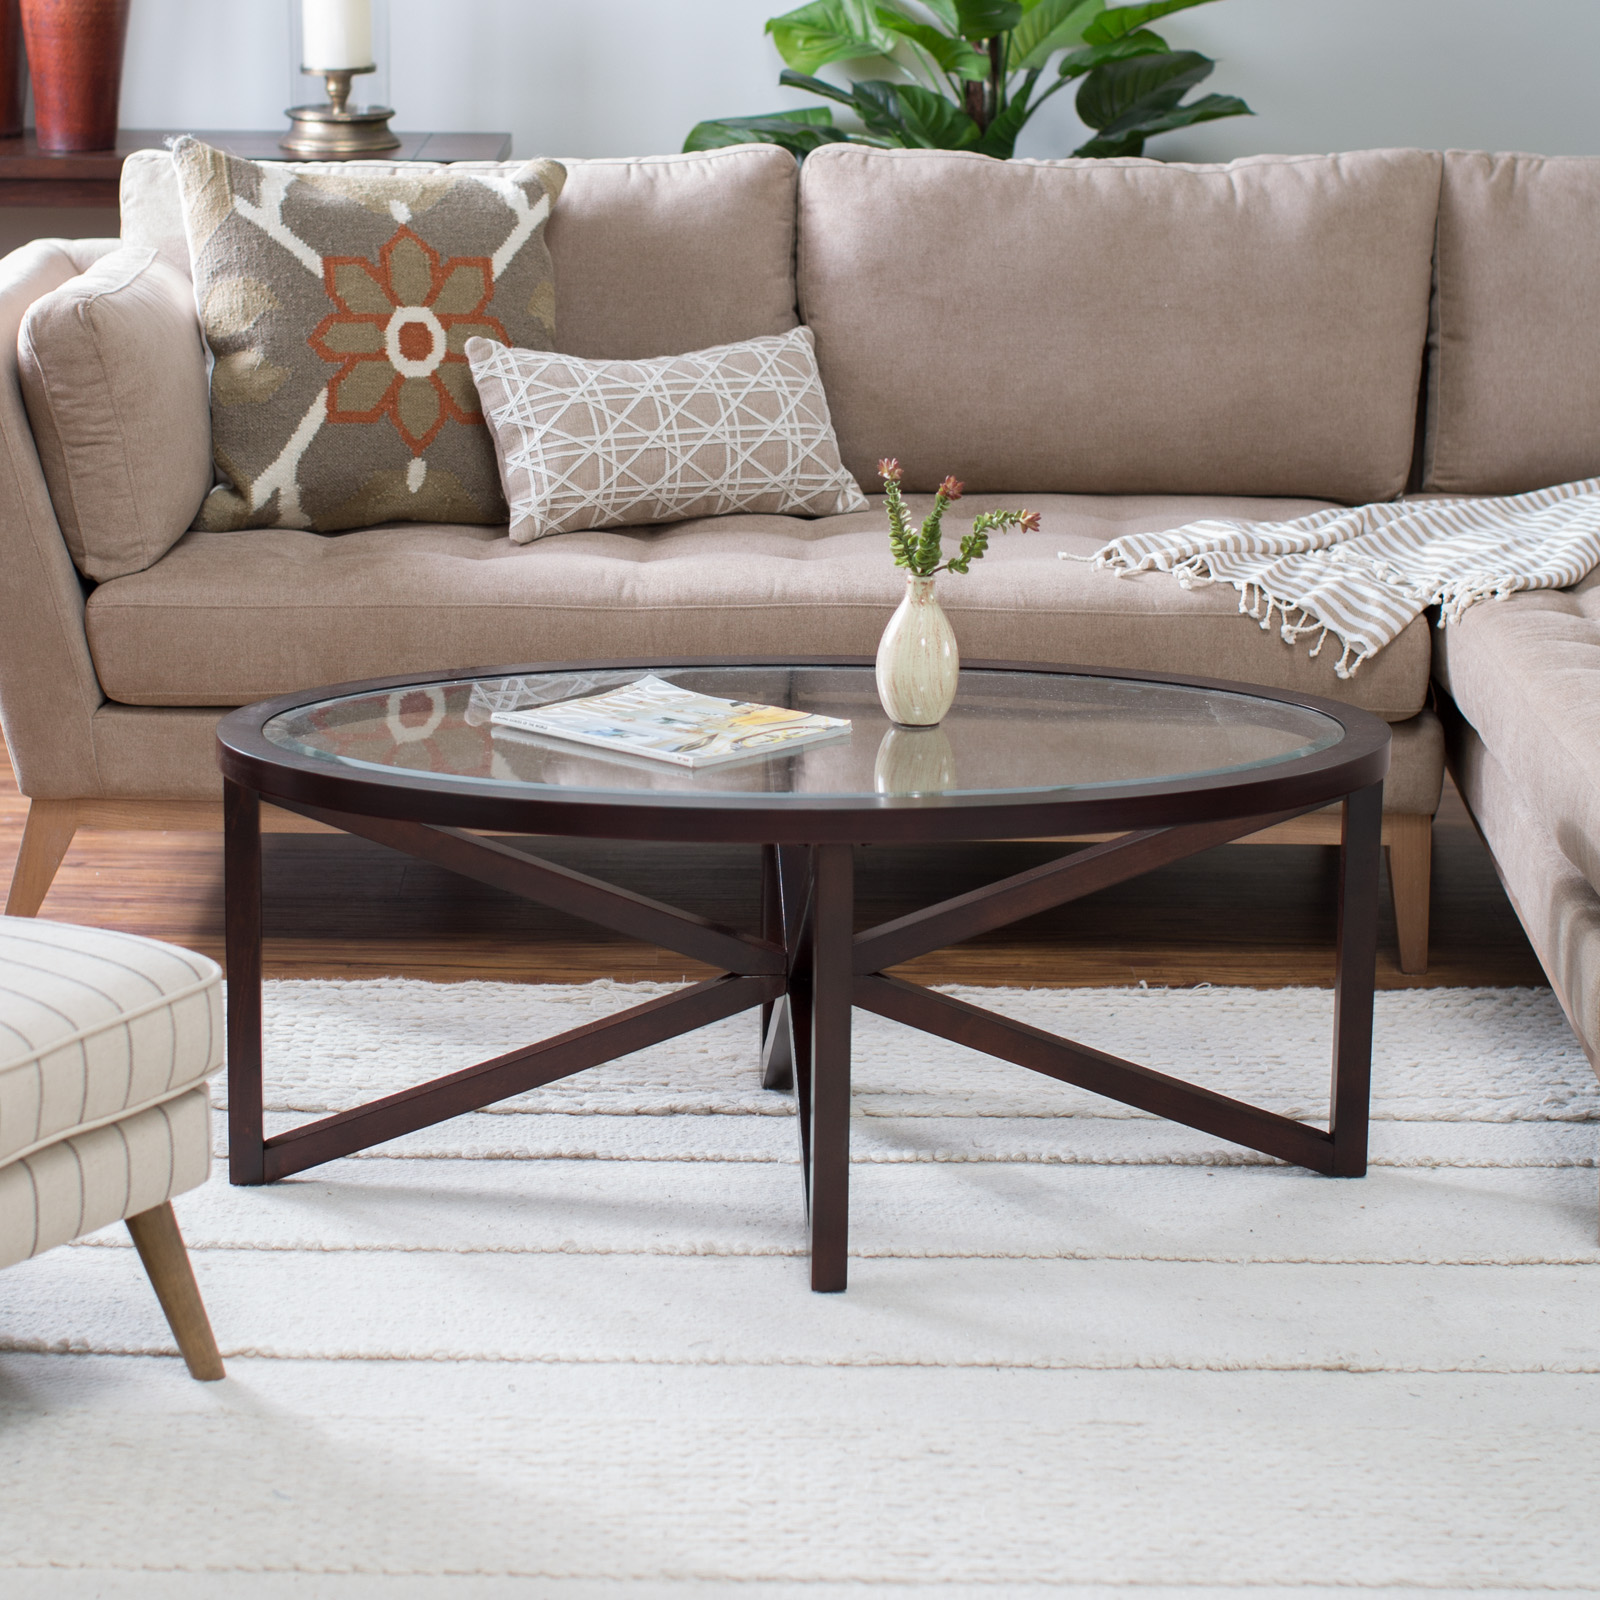 Oval Coffee Tables Hayneedle